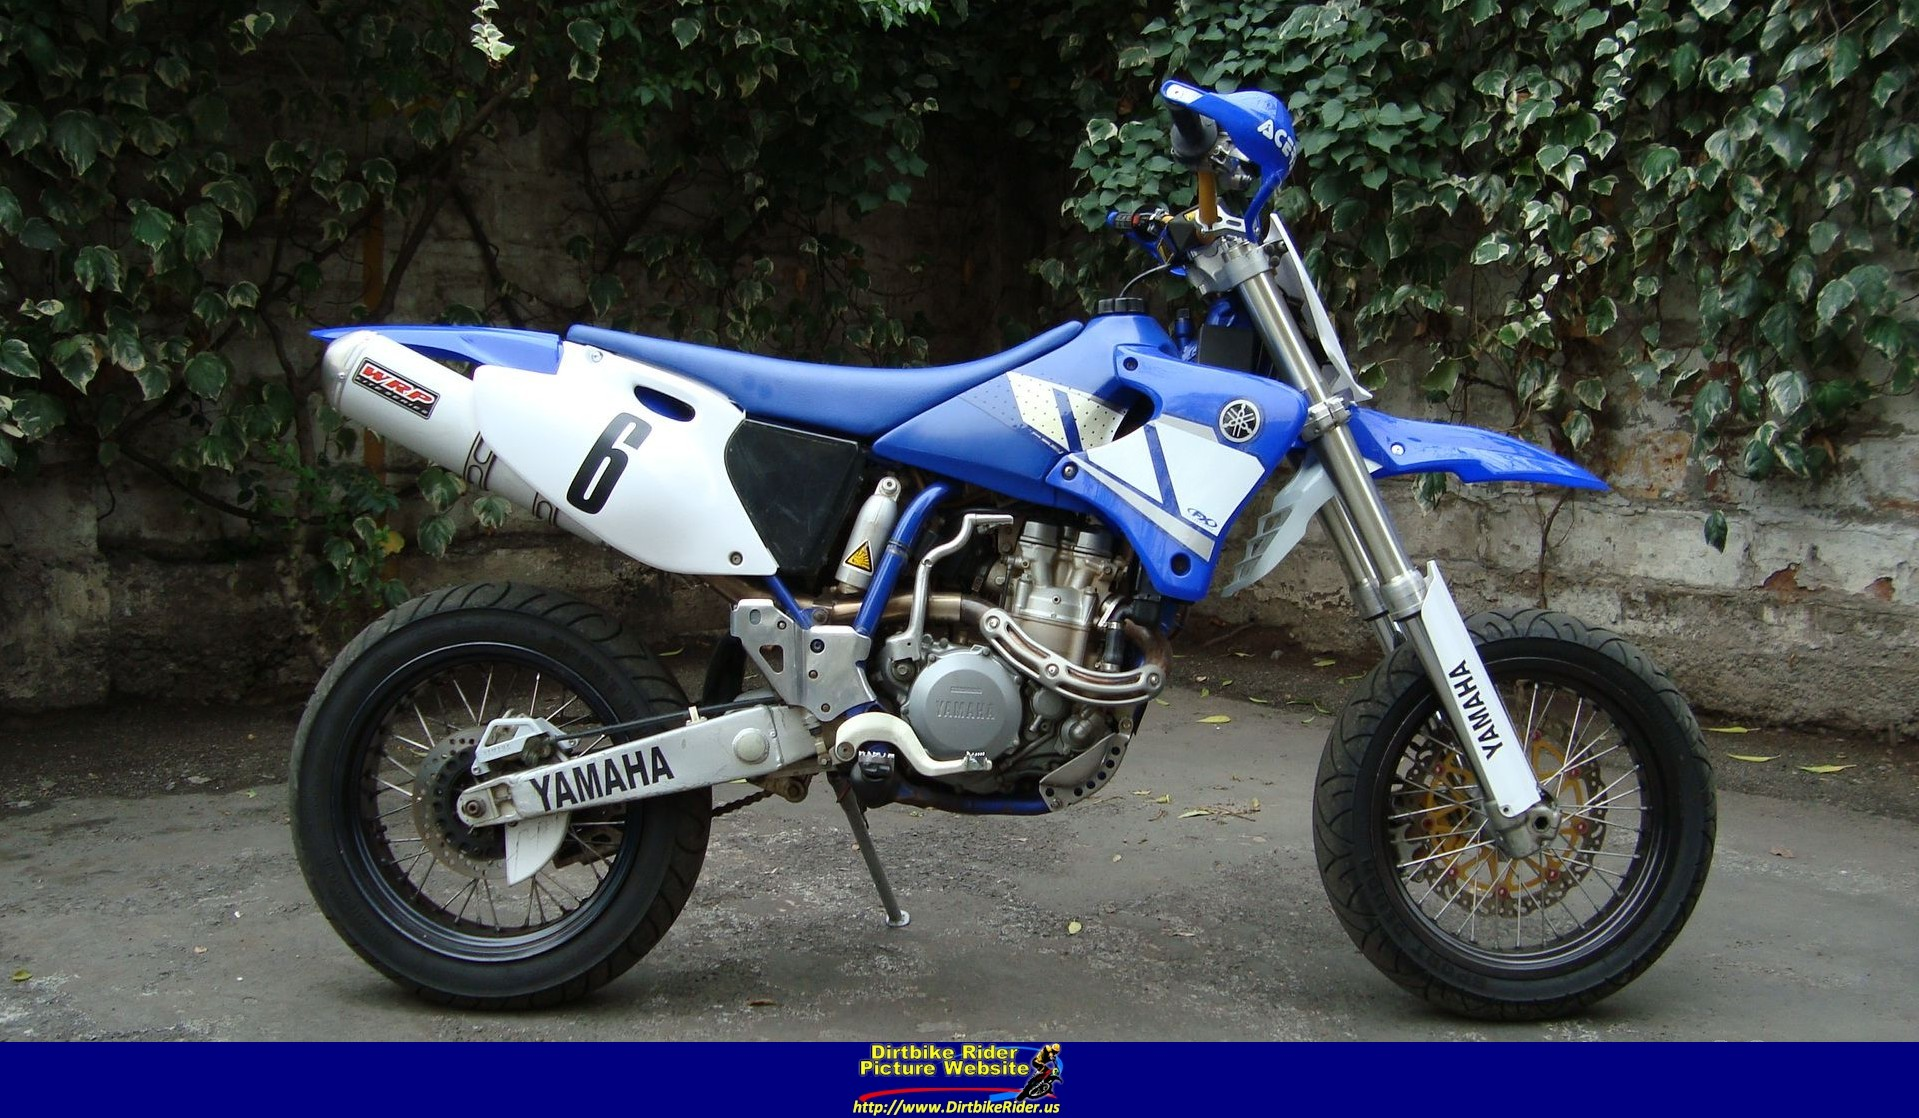 1999 yamaha wr 400 f pics specs and information for 1981 yamaha sr185 specs